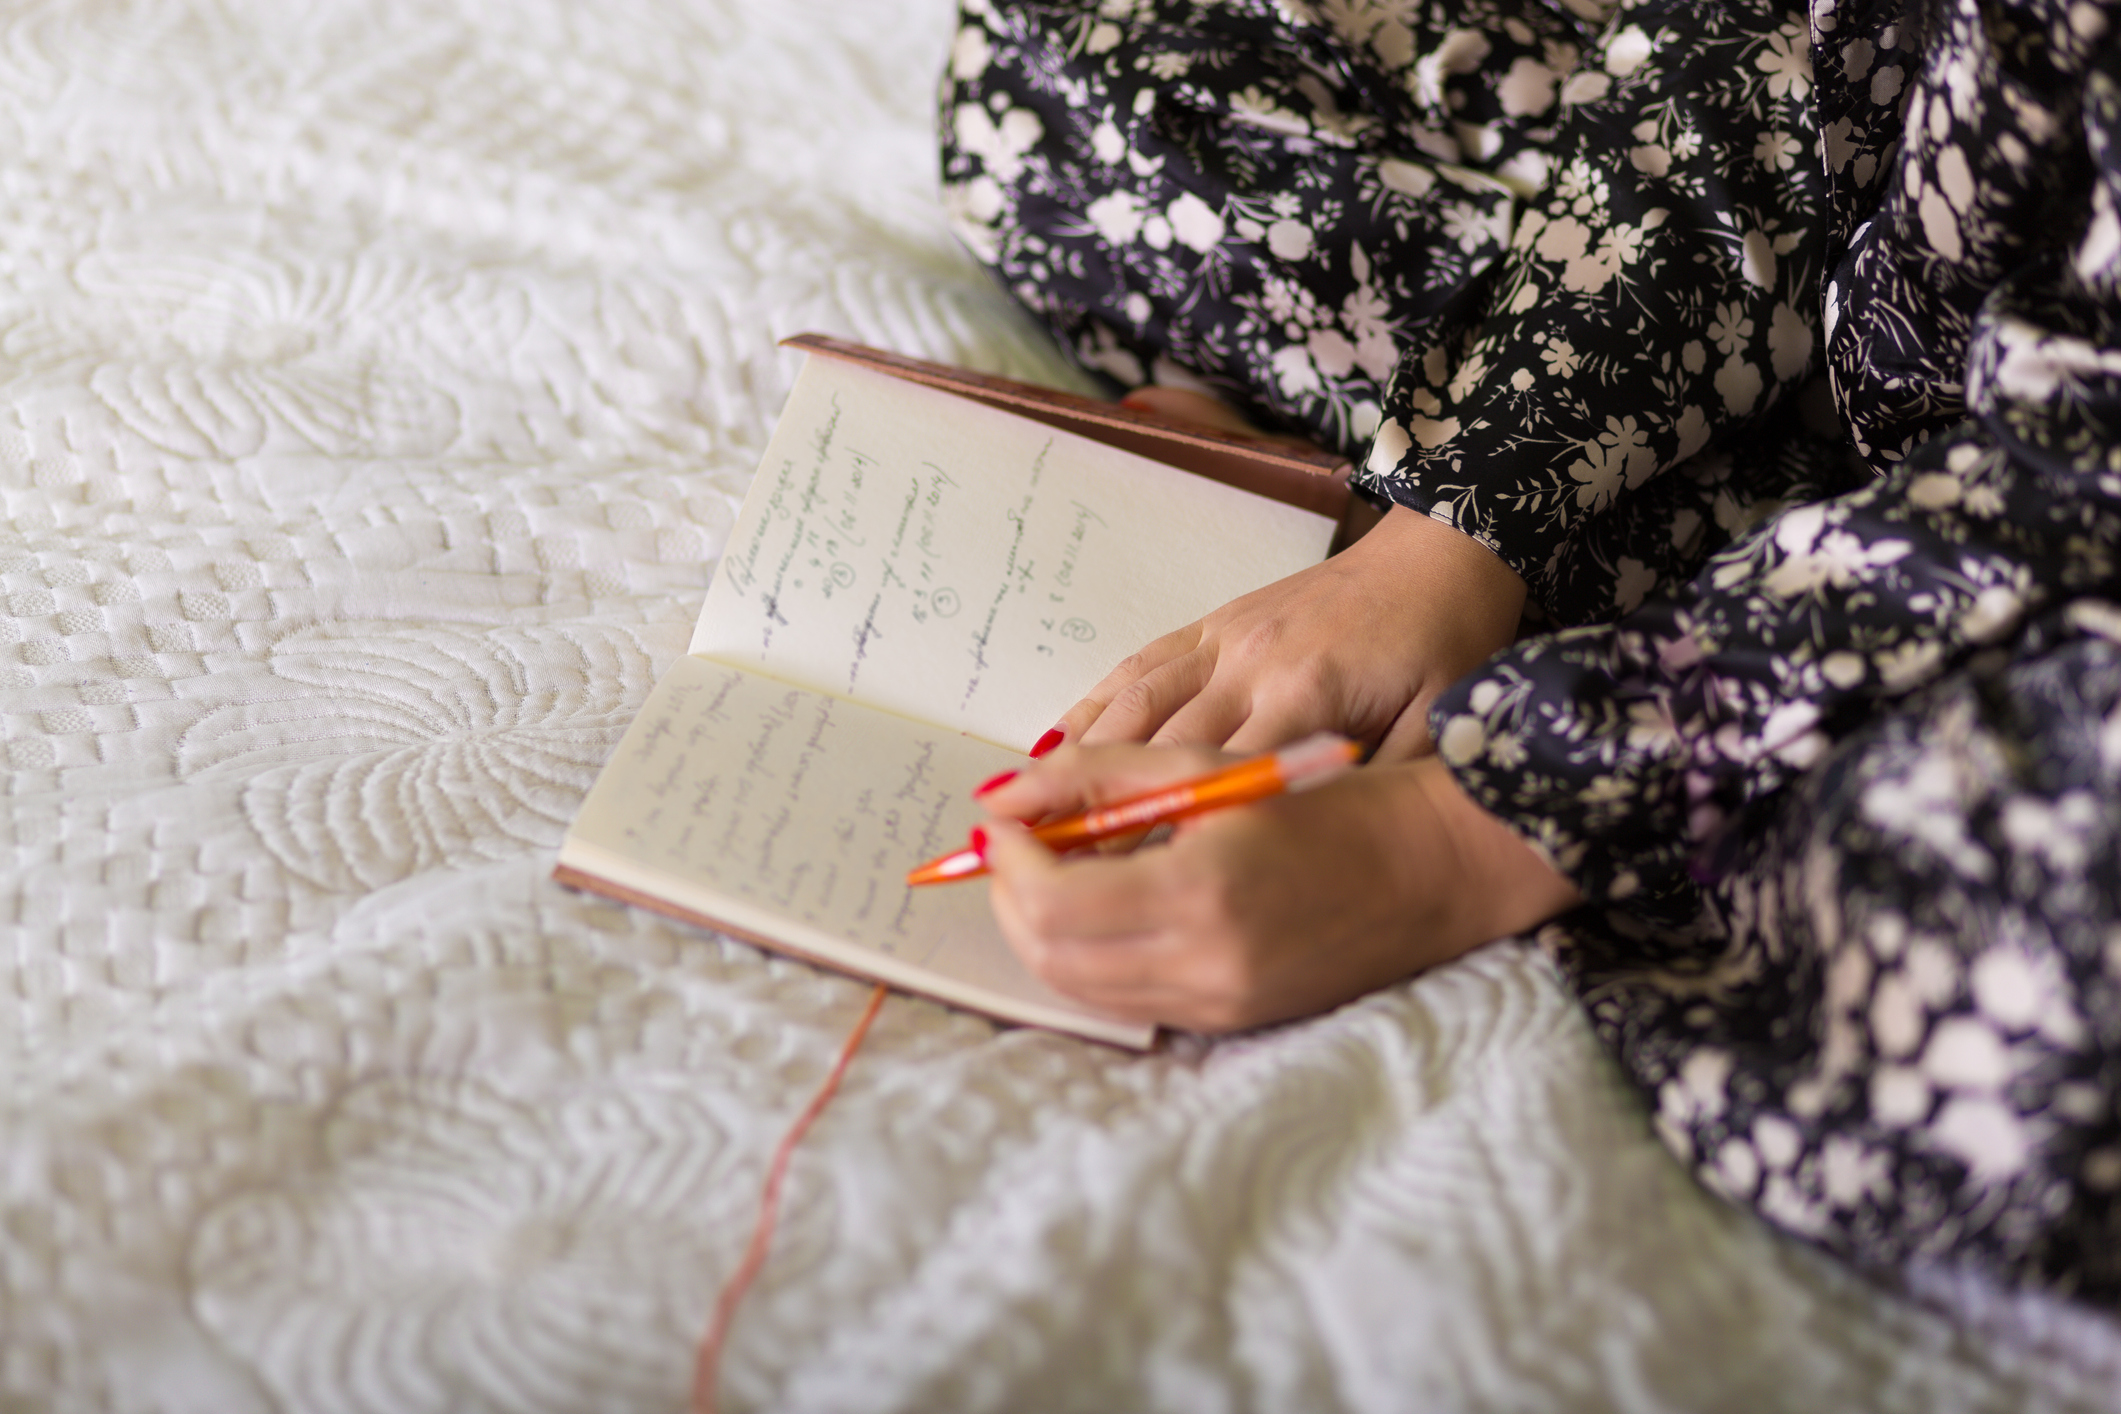 Woman with a diary